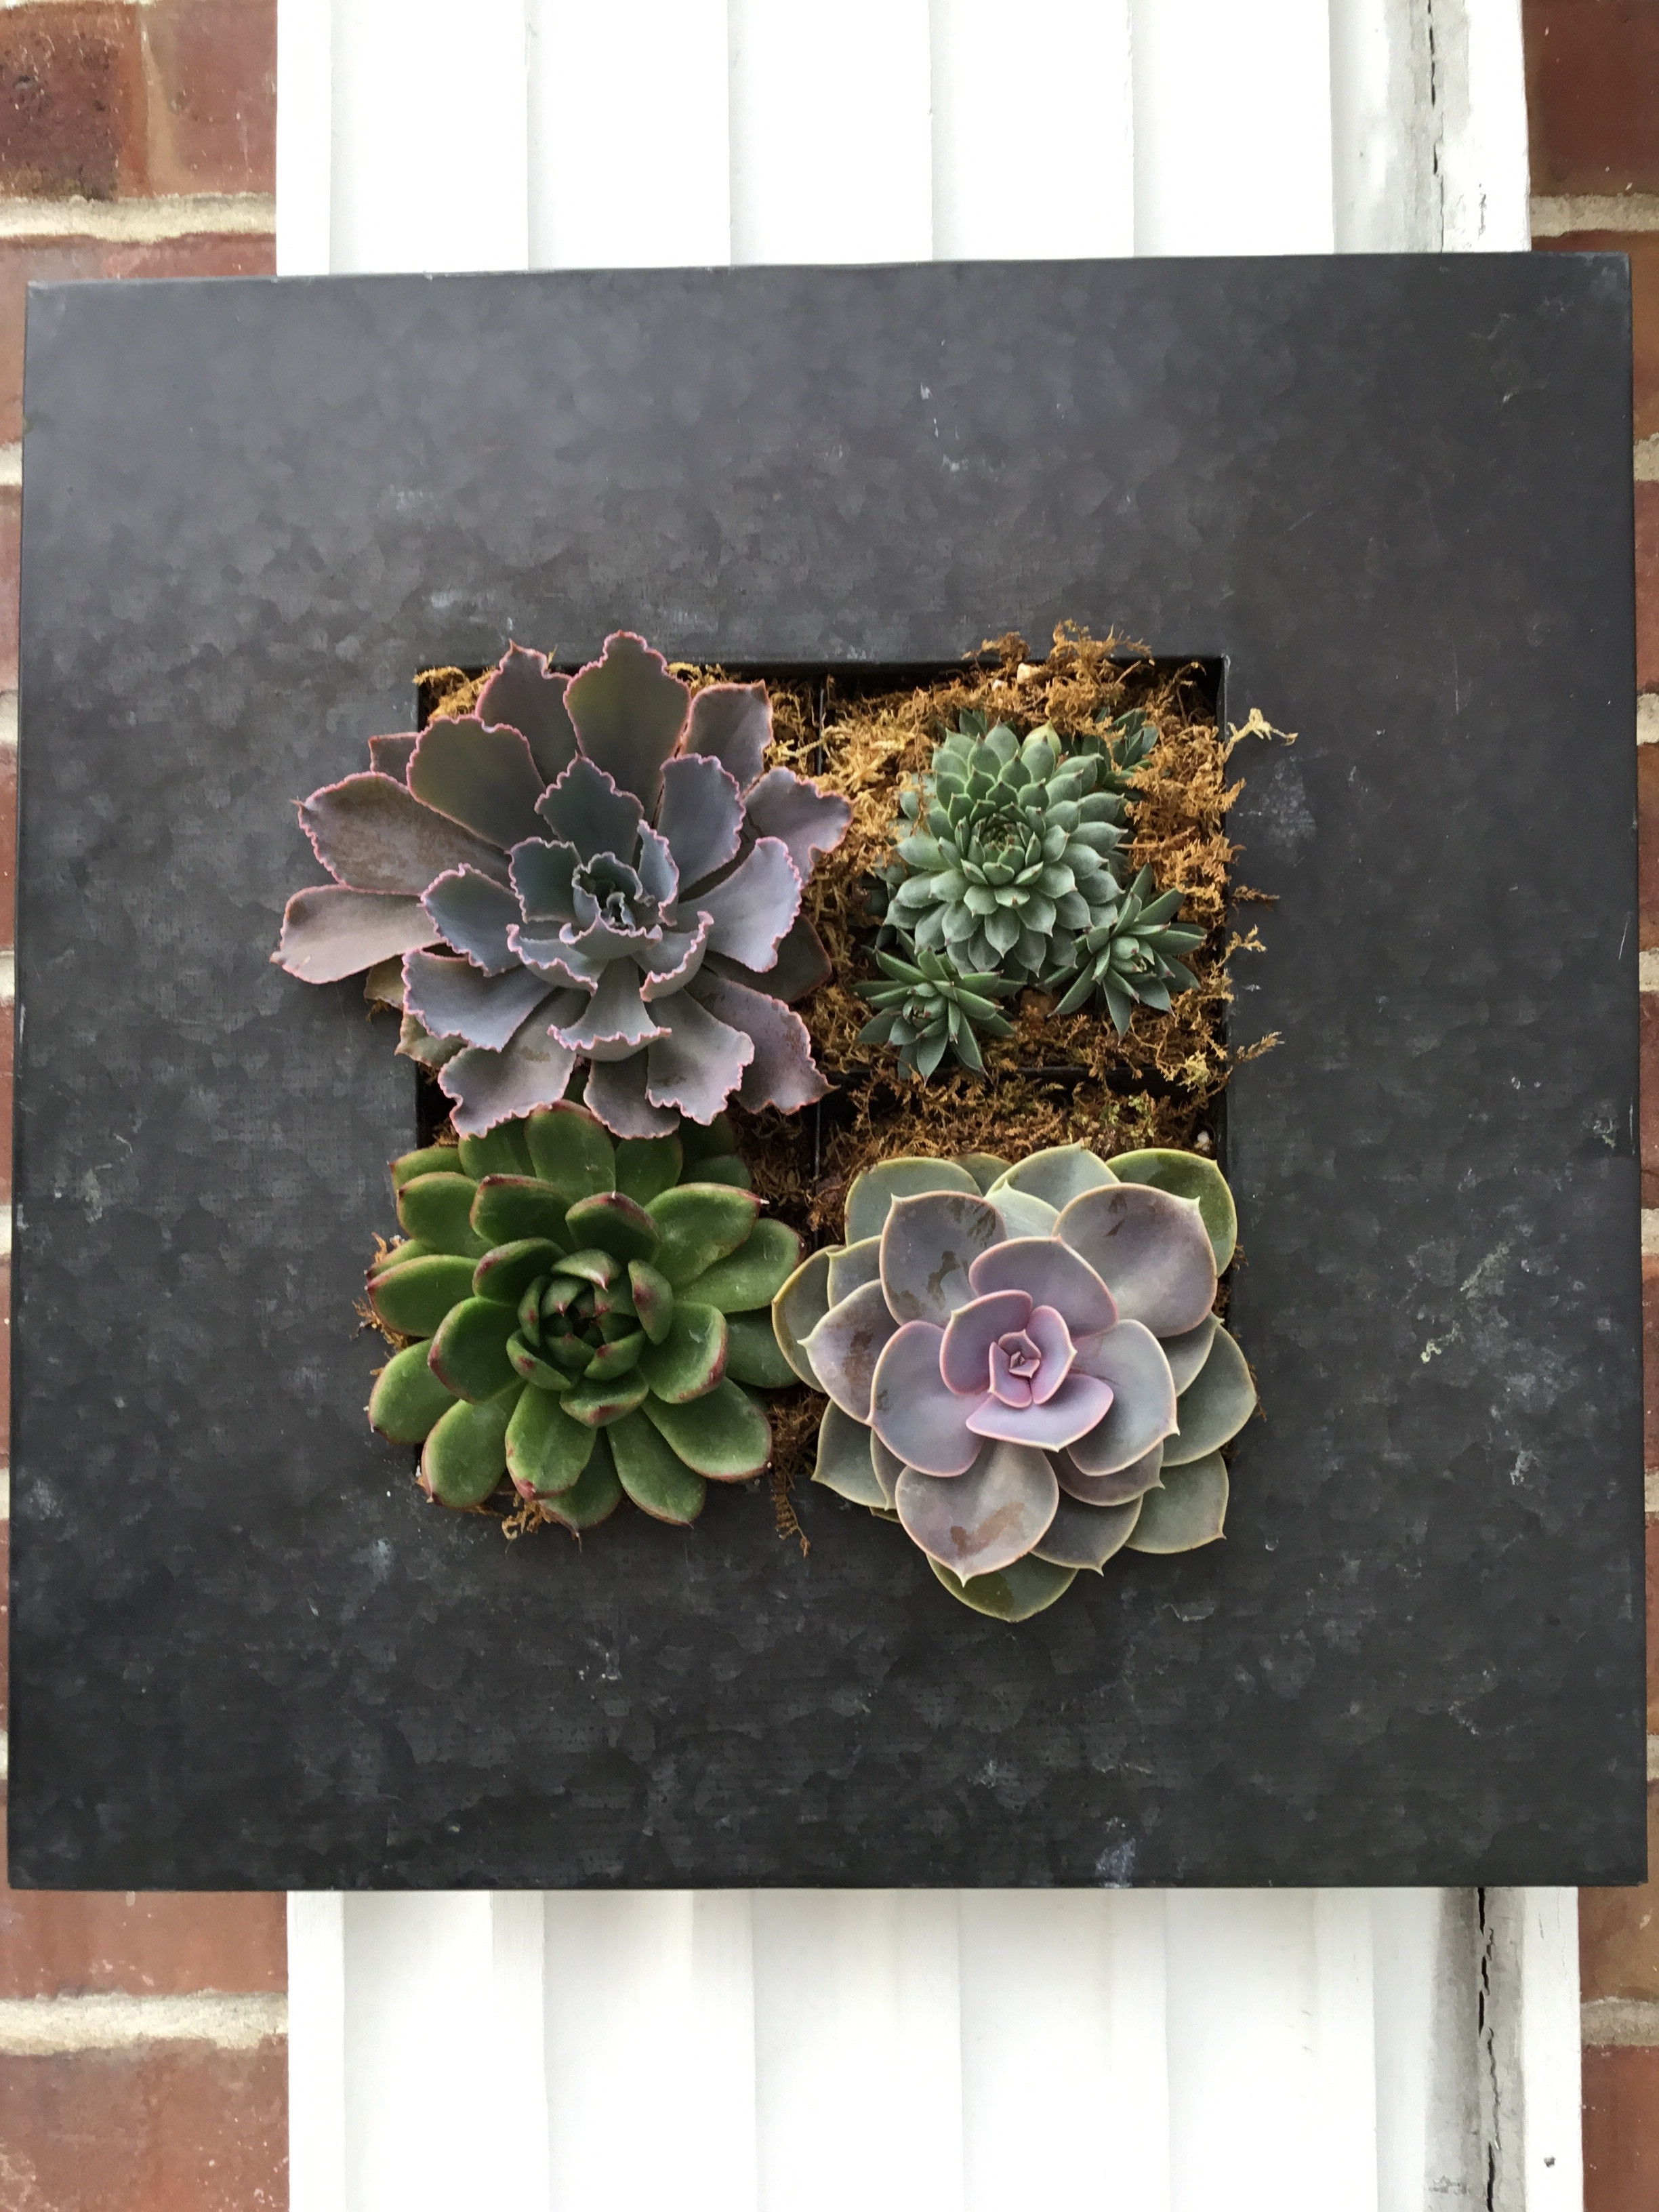 Succulent Wall Hanger In Burlingame, Ca | Floral Art And Decor For Succulent Wall Art (View 17 of 20)